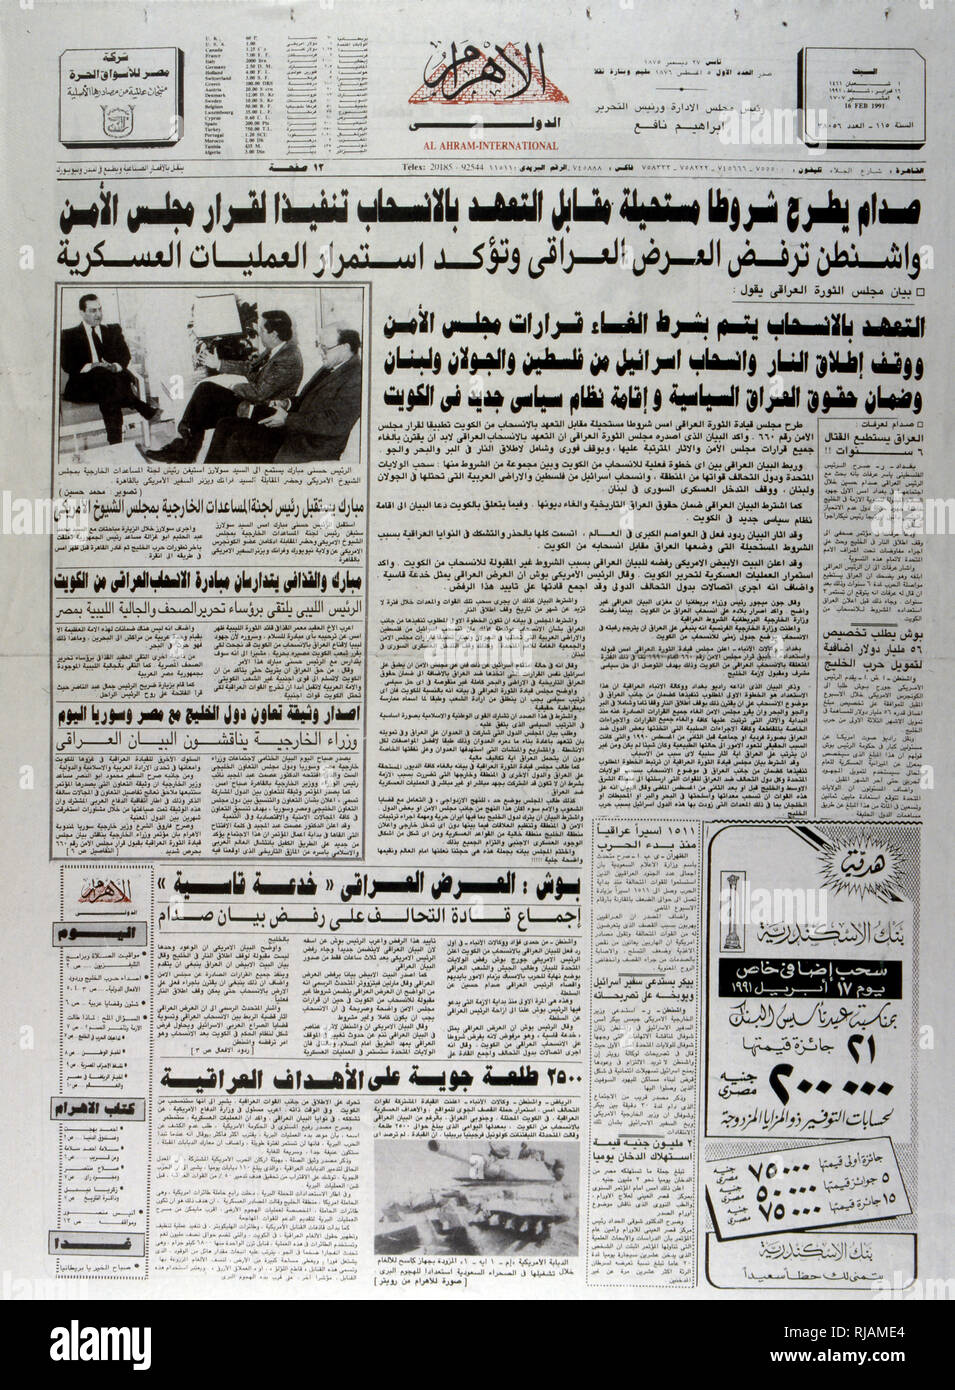 Headline of an Egyptian newspaper reporting on the Gulf War; February 1991.  The Gulf War (2 August 1990 - 28 February 1991), codenamed Operation Desert Shield and Operation Desert Storm, was a war waged by coalition forces from 35 nations led by the United States against Iraq in response to Iraq's invasion and annexation of Kuwait. - Stock Image